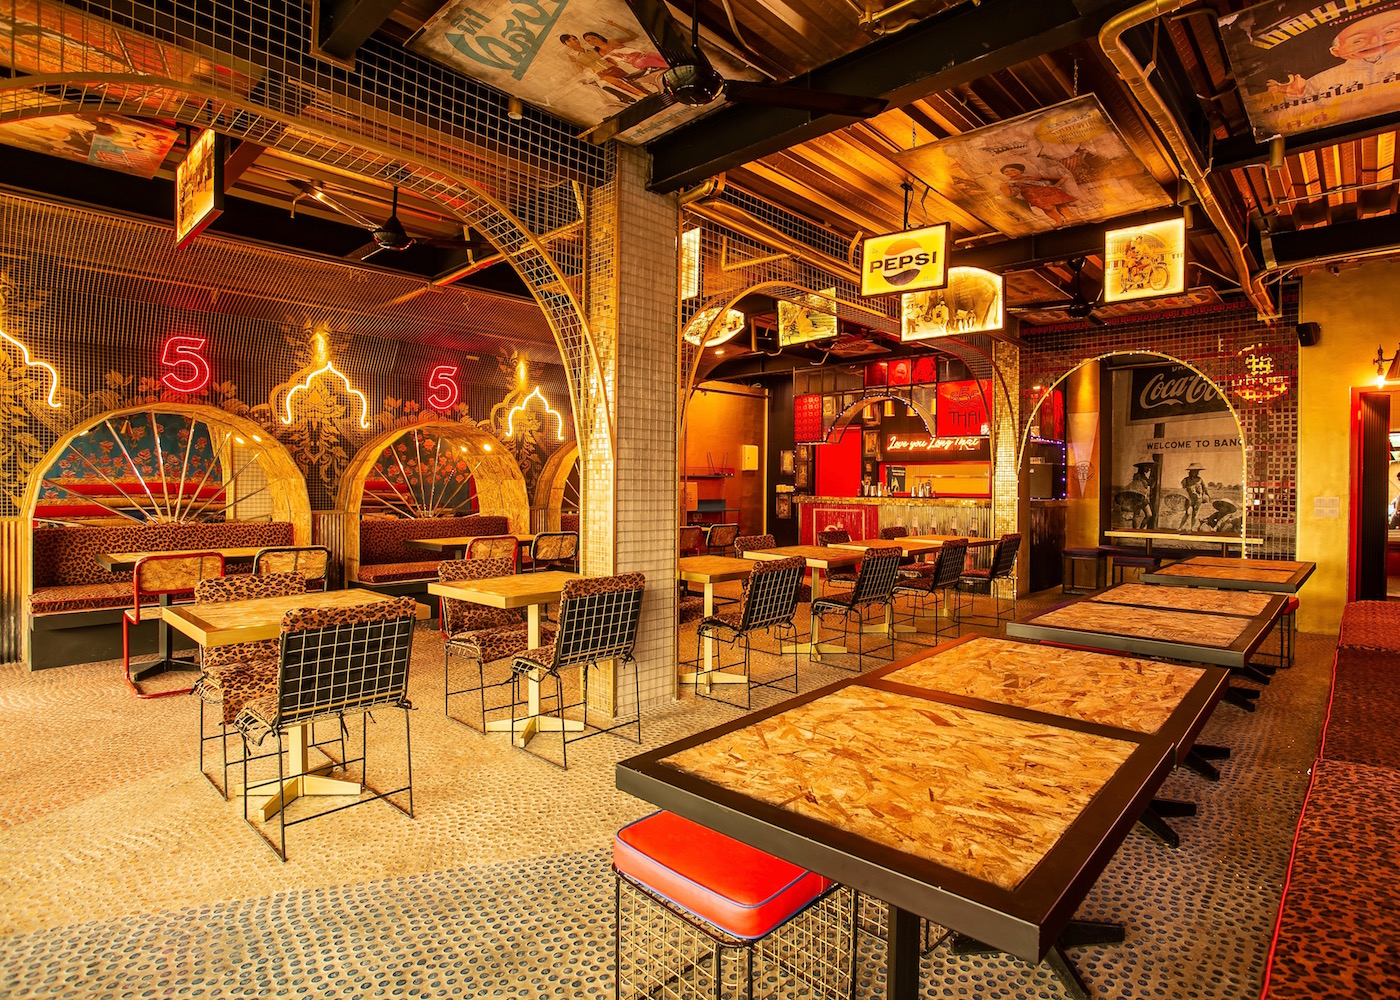 The red and gold interiors of the new 555 Thai restaurant in Canggu, Bali, Indonesia